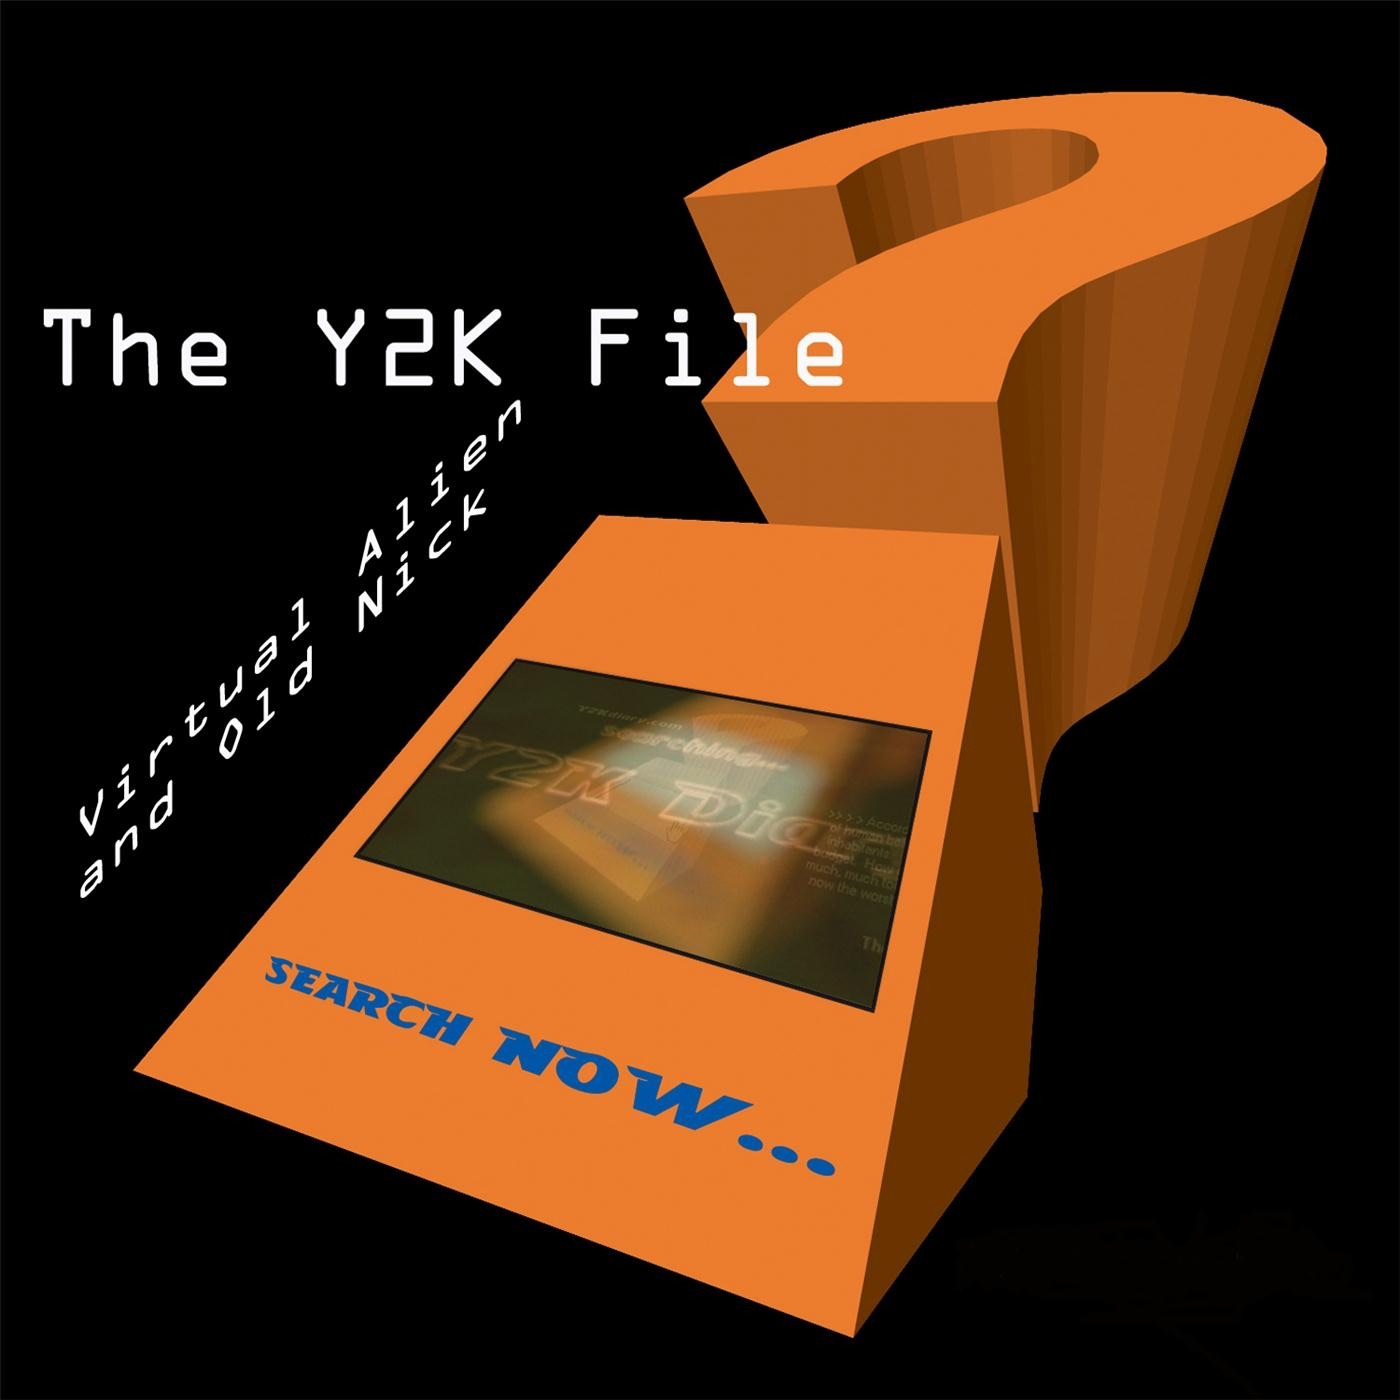 The Y2K File, Act 1: Prologue